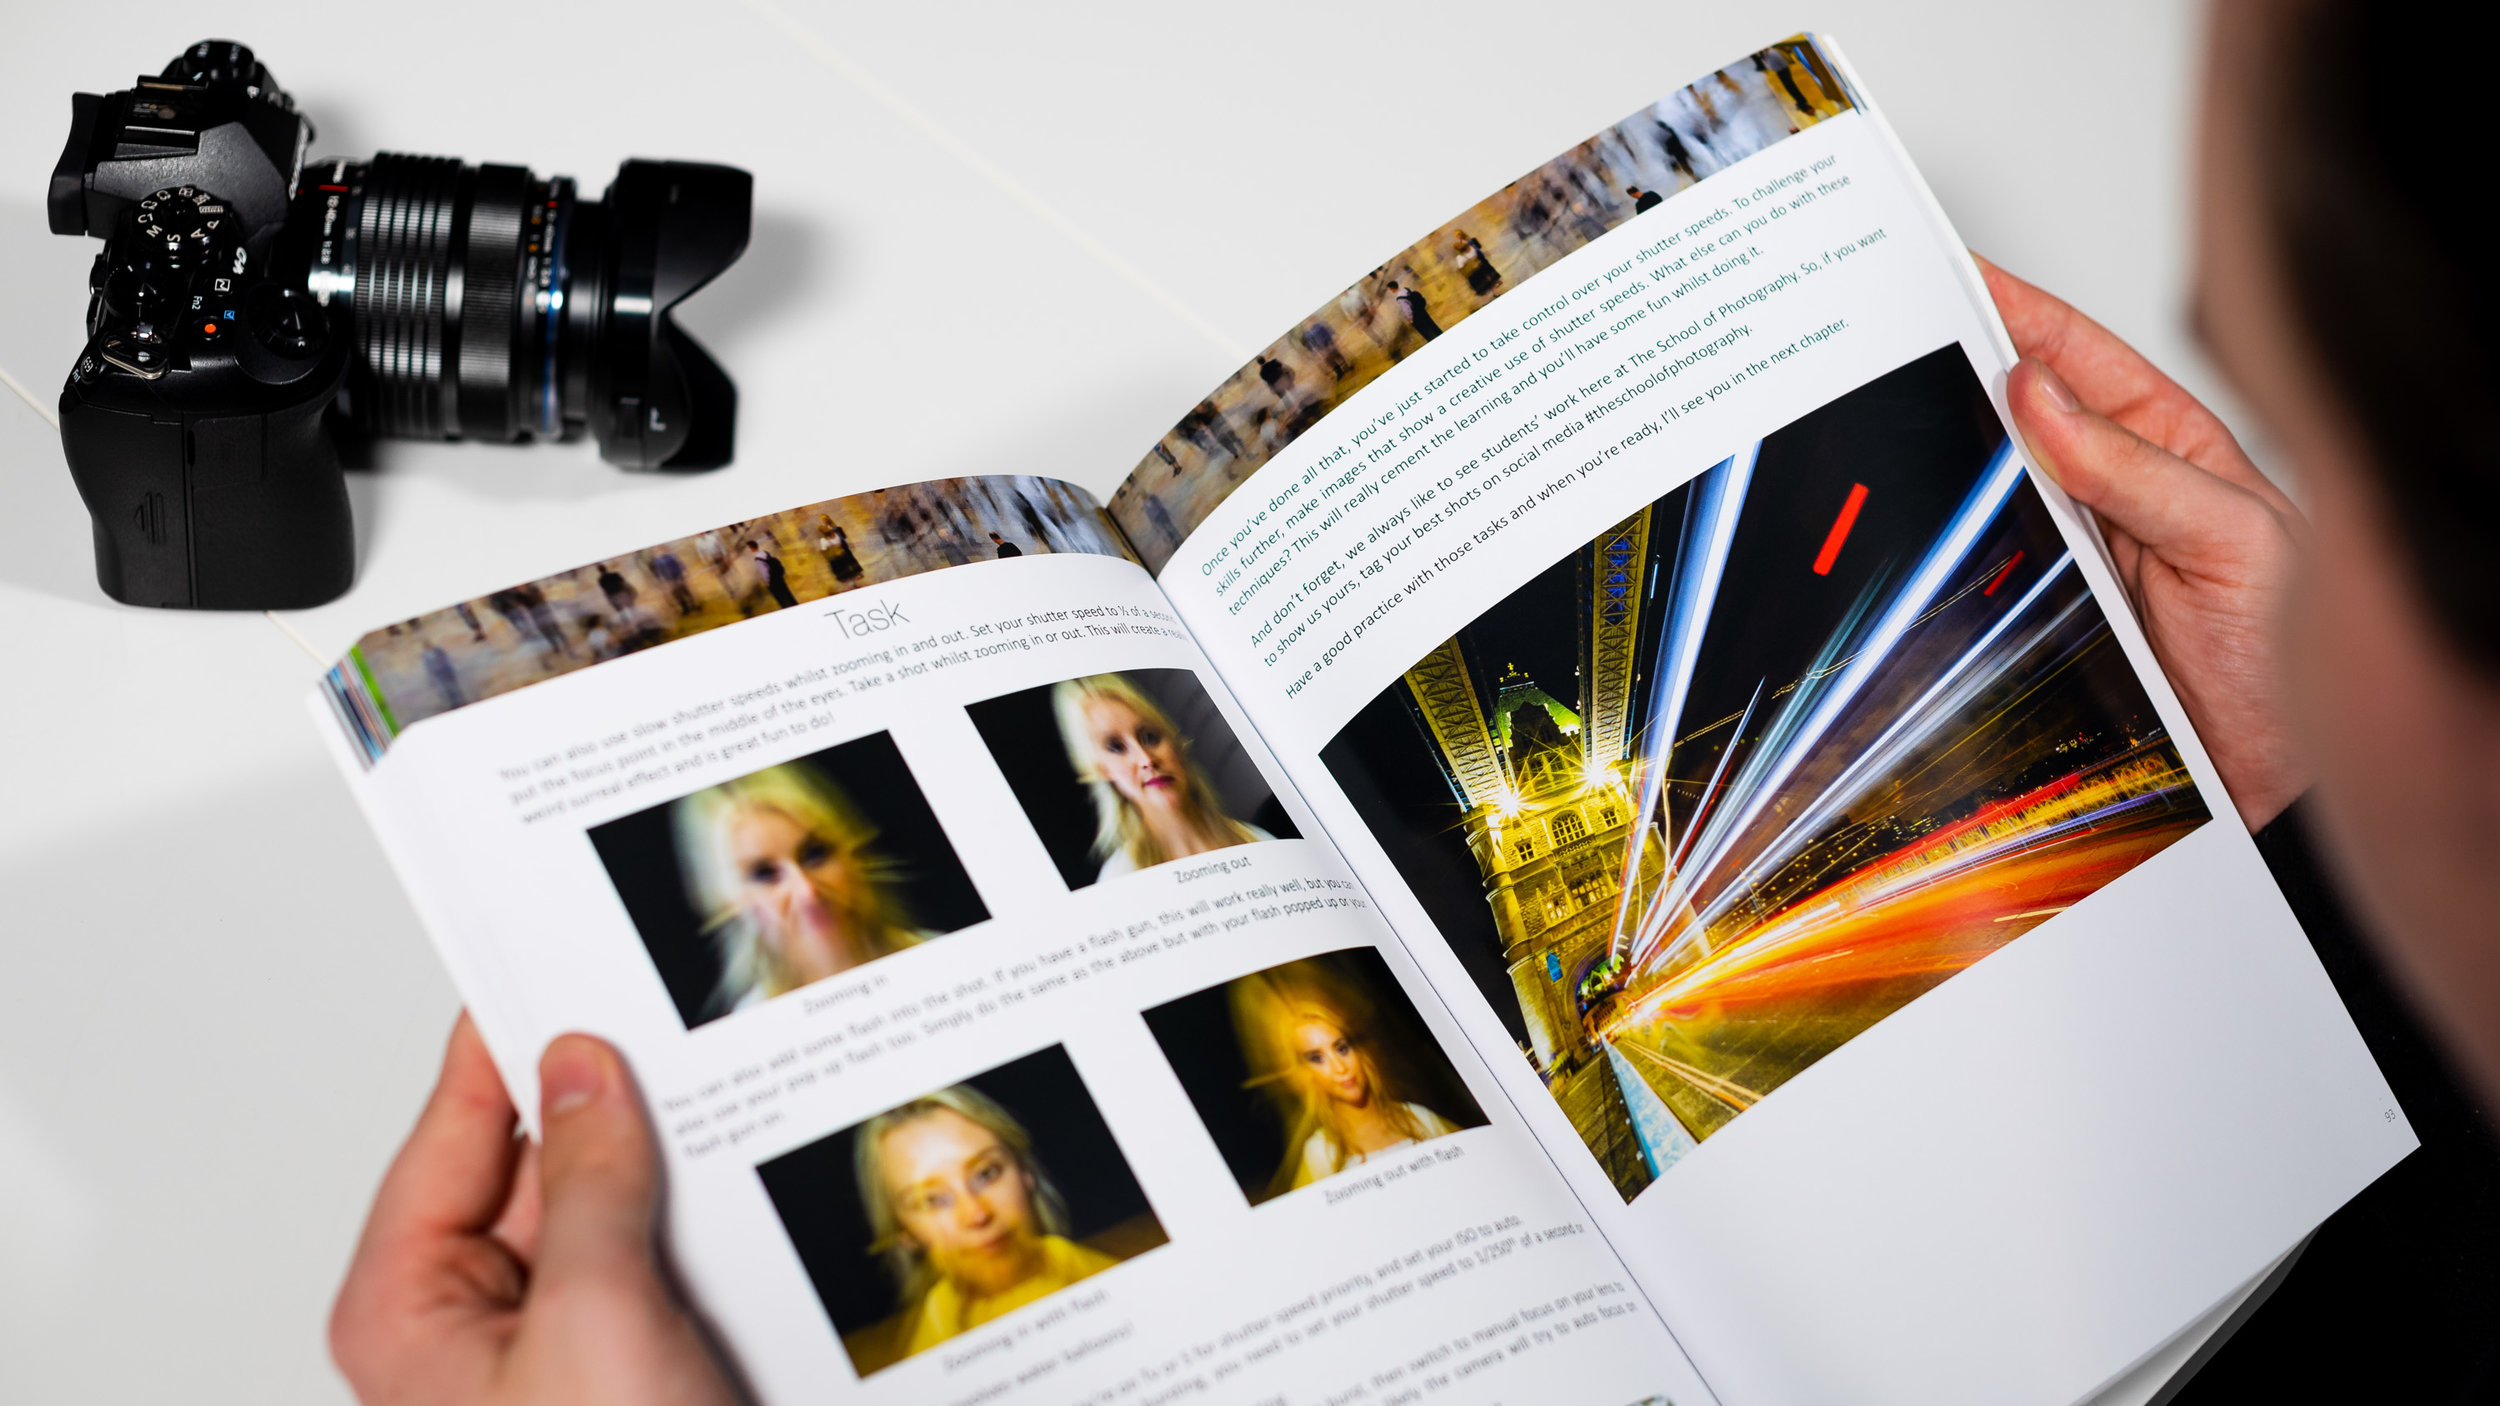 Complete Guide to Photography Book - For those who prefer physical products, here is a book for learners of photography. A great resource for any learning photographer.